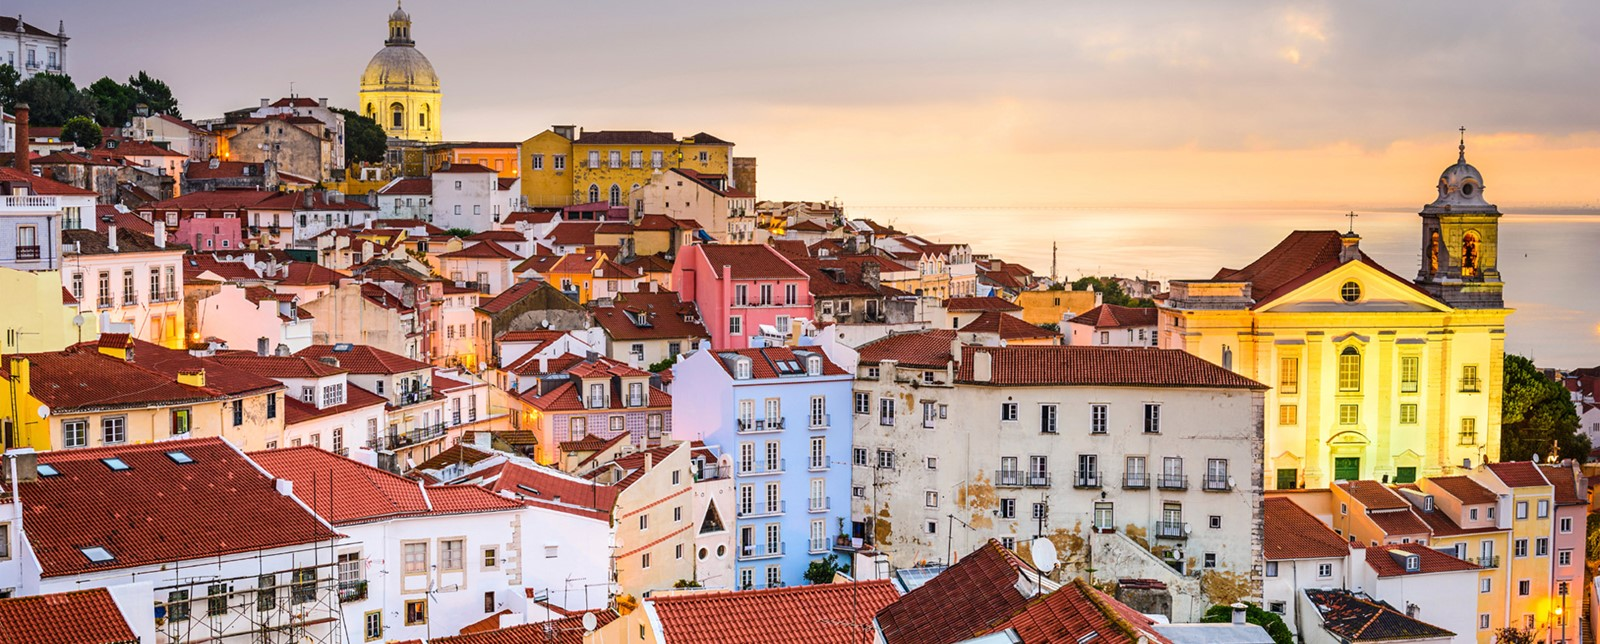 Rooftops of buildings in Lisbon